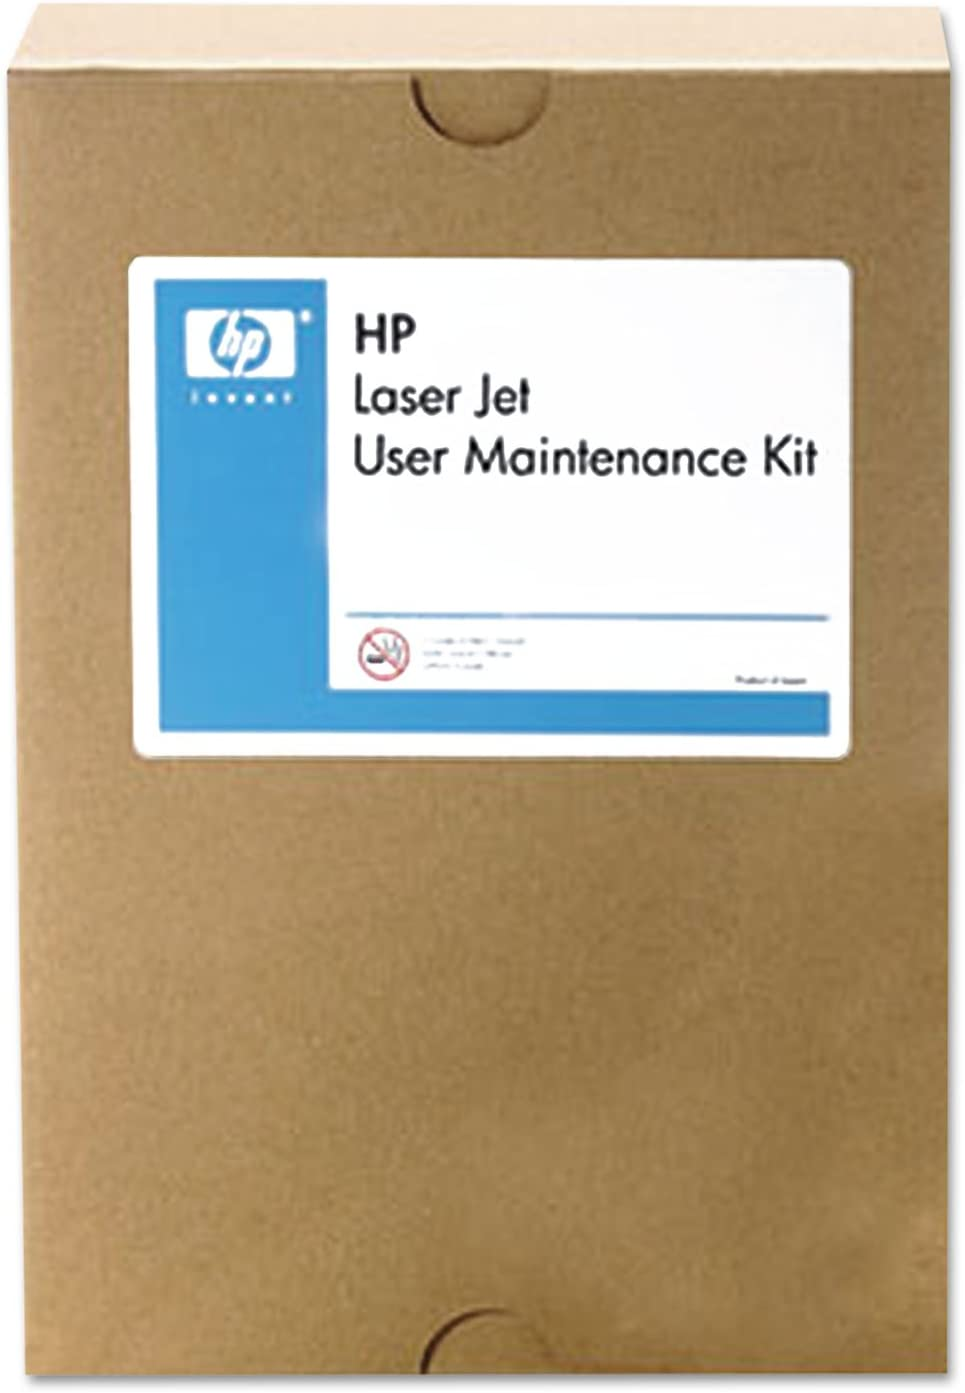 HP CE731A CE731A 110V Maintenance Kit 61LHPfja1MLSL1500_